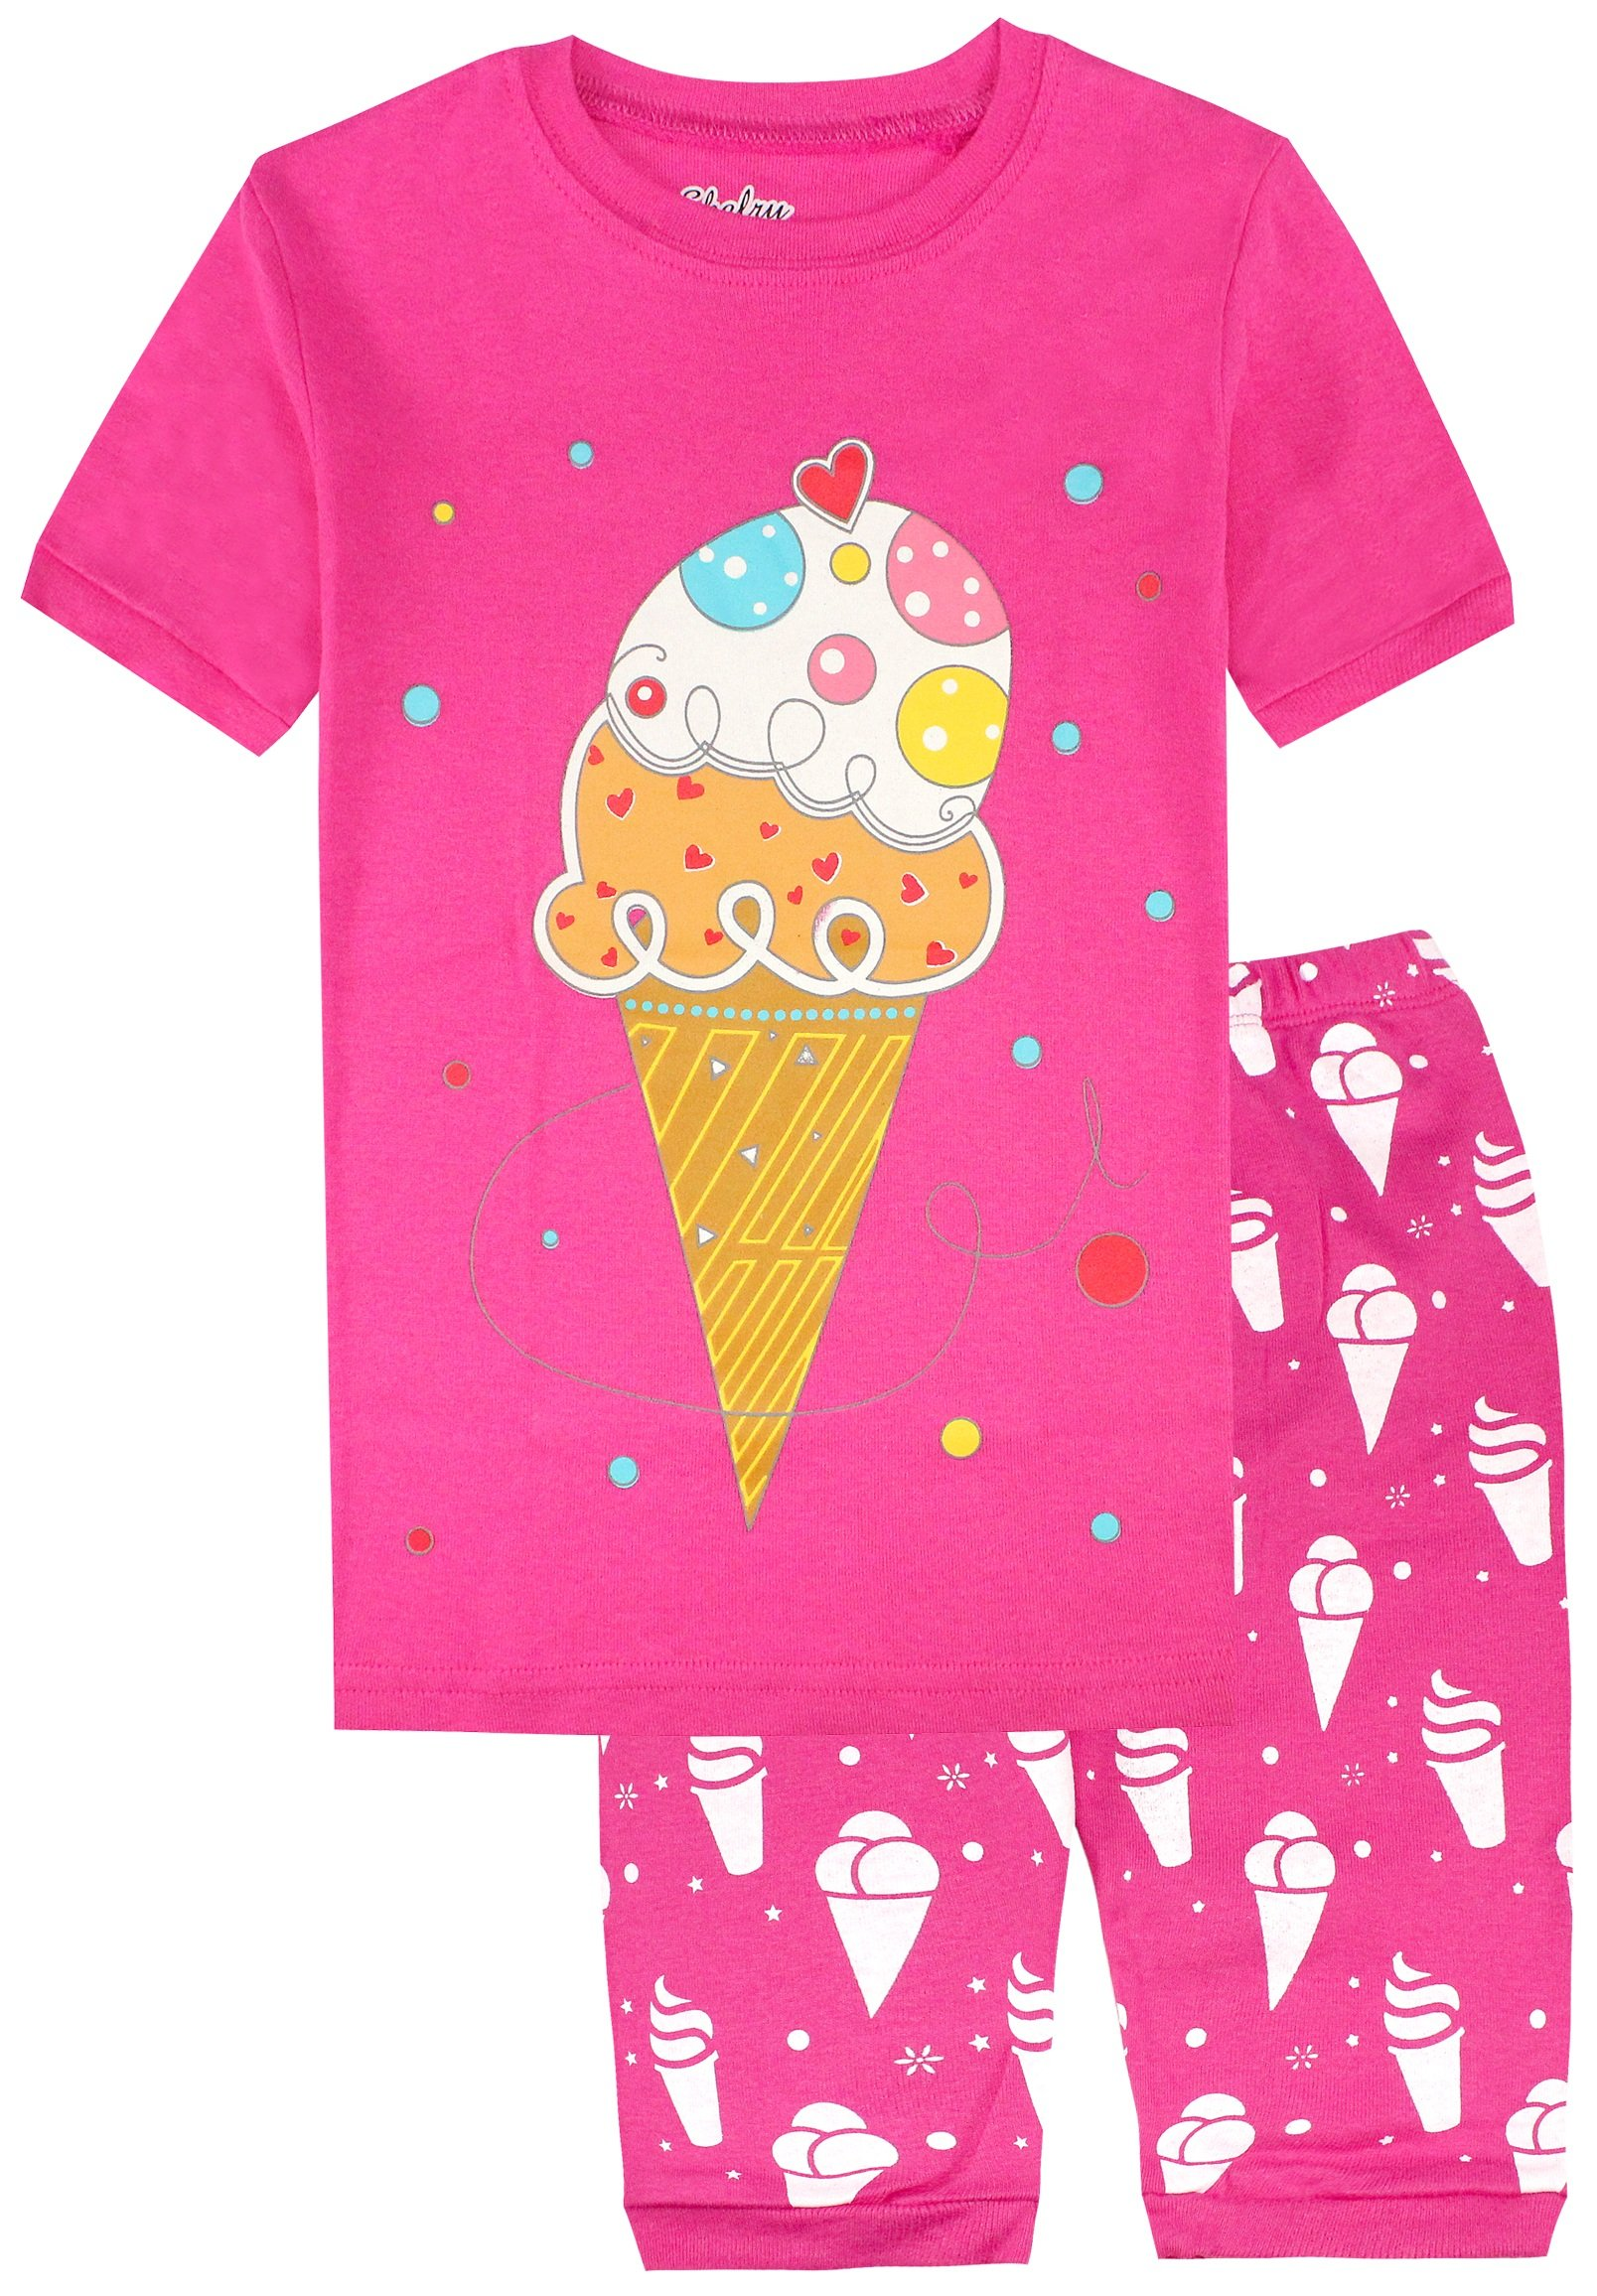 Pajamas for Girls Ice Cream Cotton Short Toddler Pants Summer Clothes 2 Piece 5Y